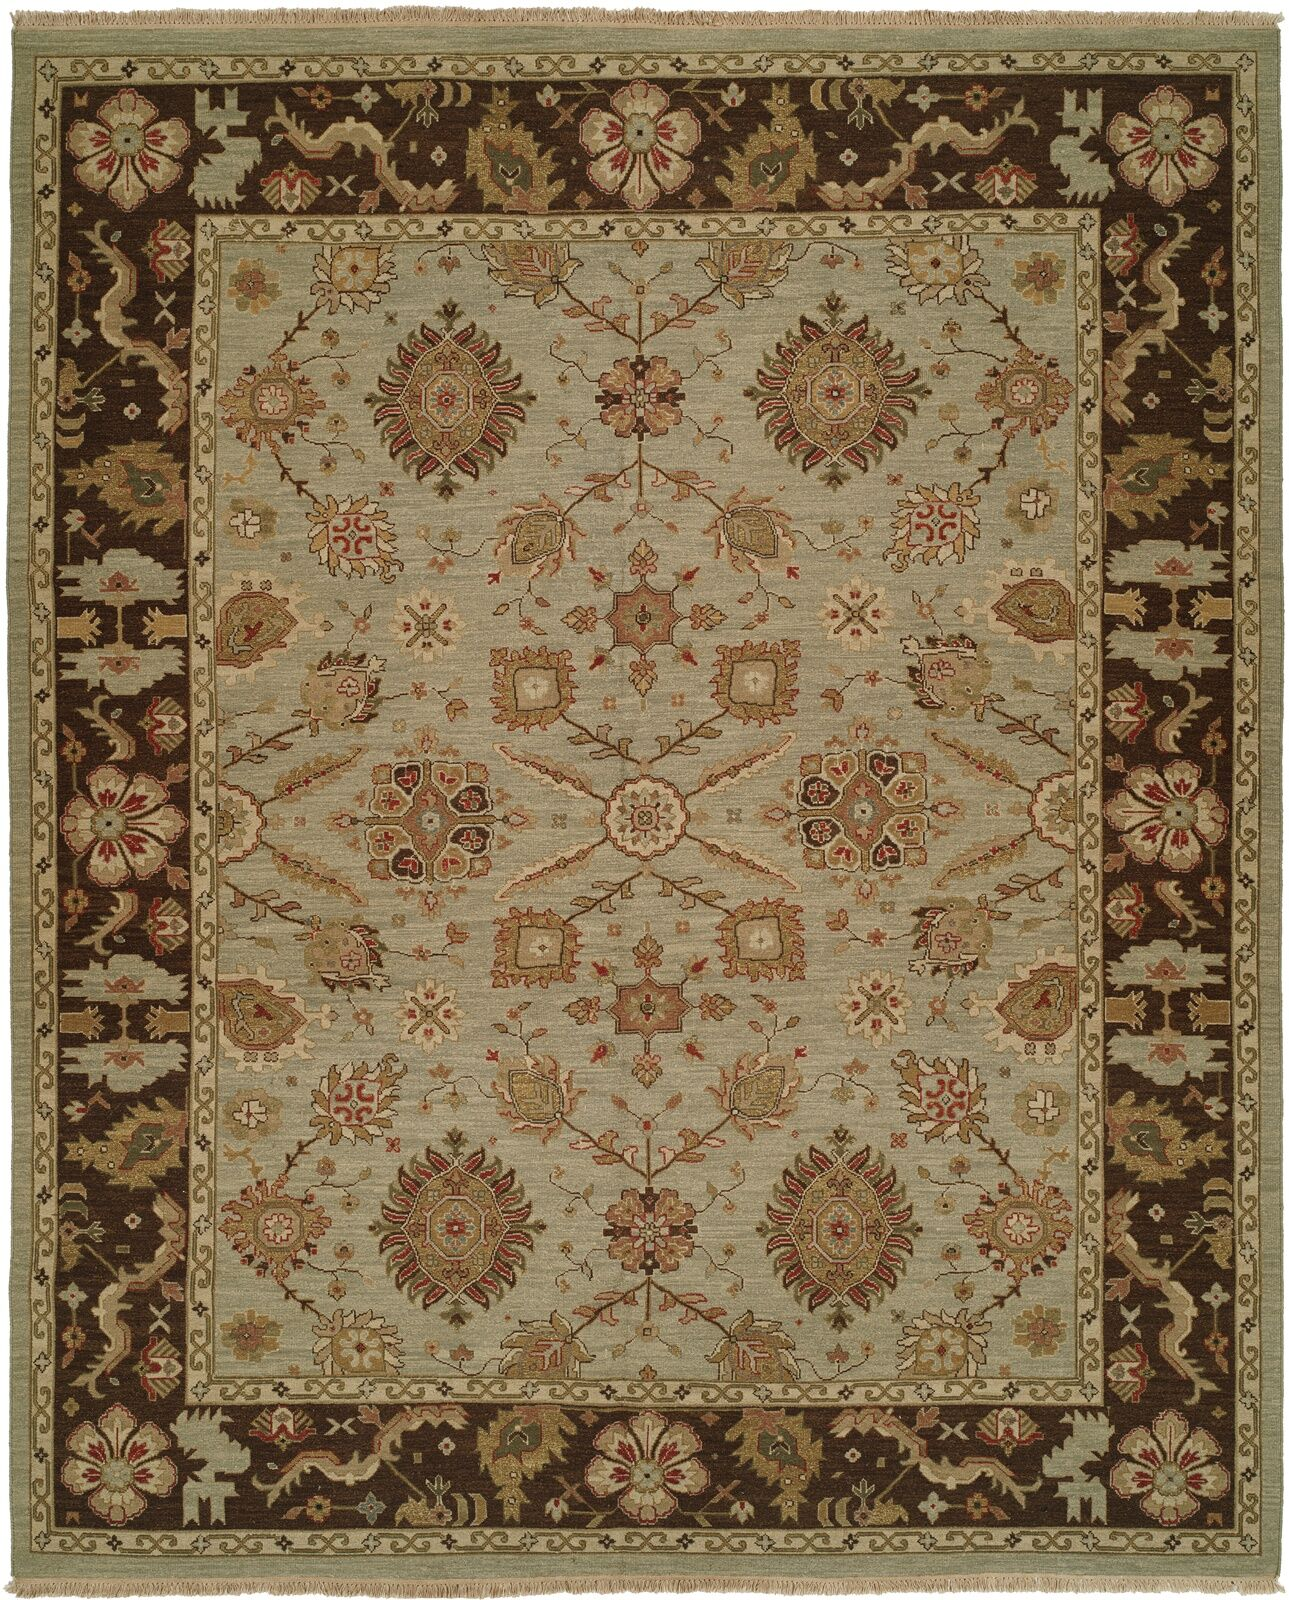 Valparaiso Hand-Woven Beige/Brown Area Rug Rug Size: Rectangle 12' x 15'